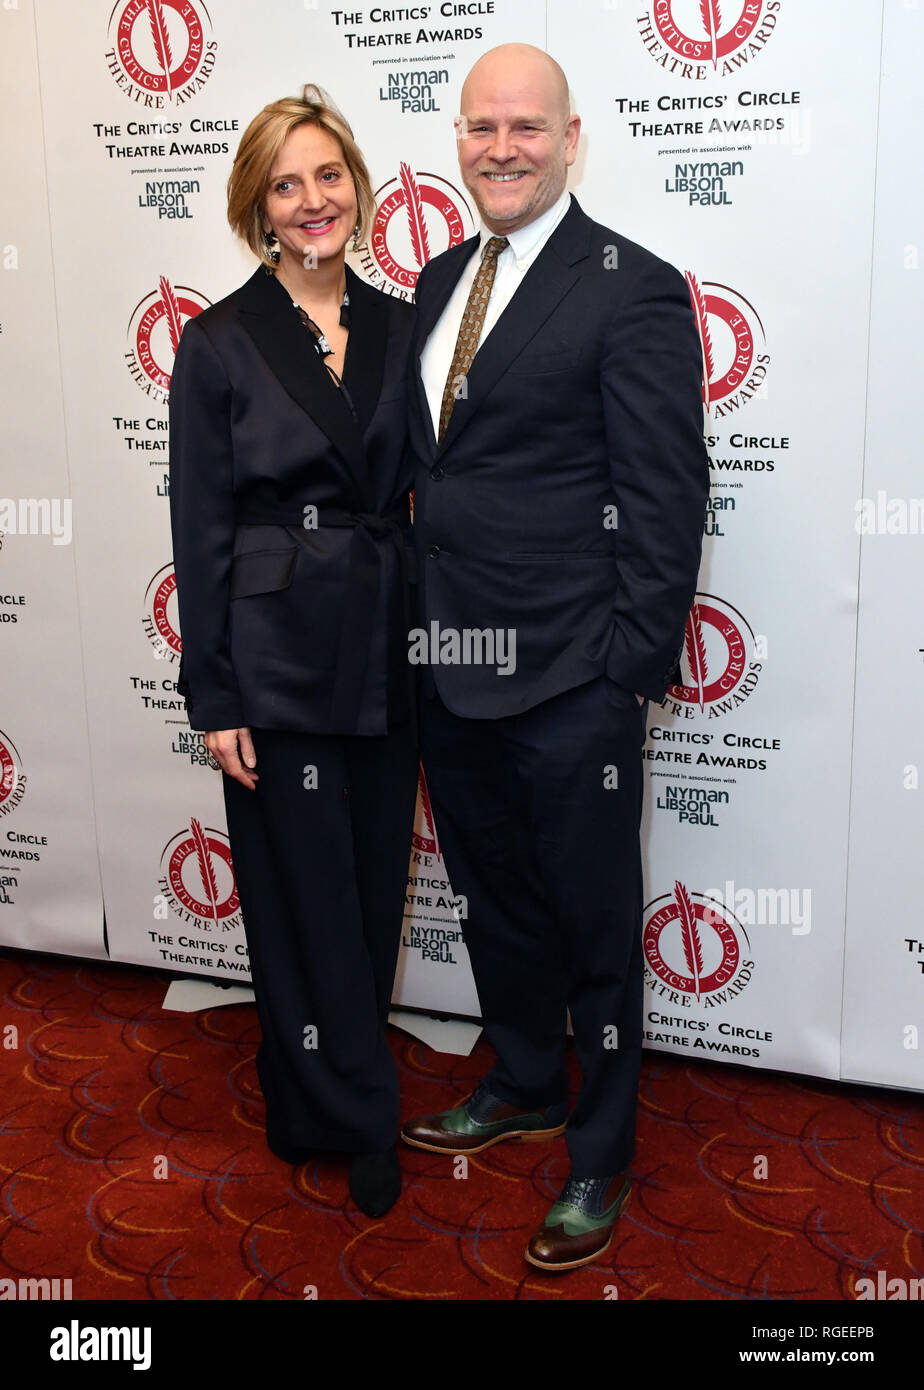 London, UK. 29th Jan 2019. Marianne Elliott, Chris Harper at The Critics' Circle Theatre Awards annual ceremony which celebrates the achievements of 2018's theatre productions, at Prince of Wales Theatre Credit: Nils Jorgensen/Alamy Live News - Stock Image